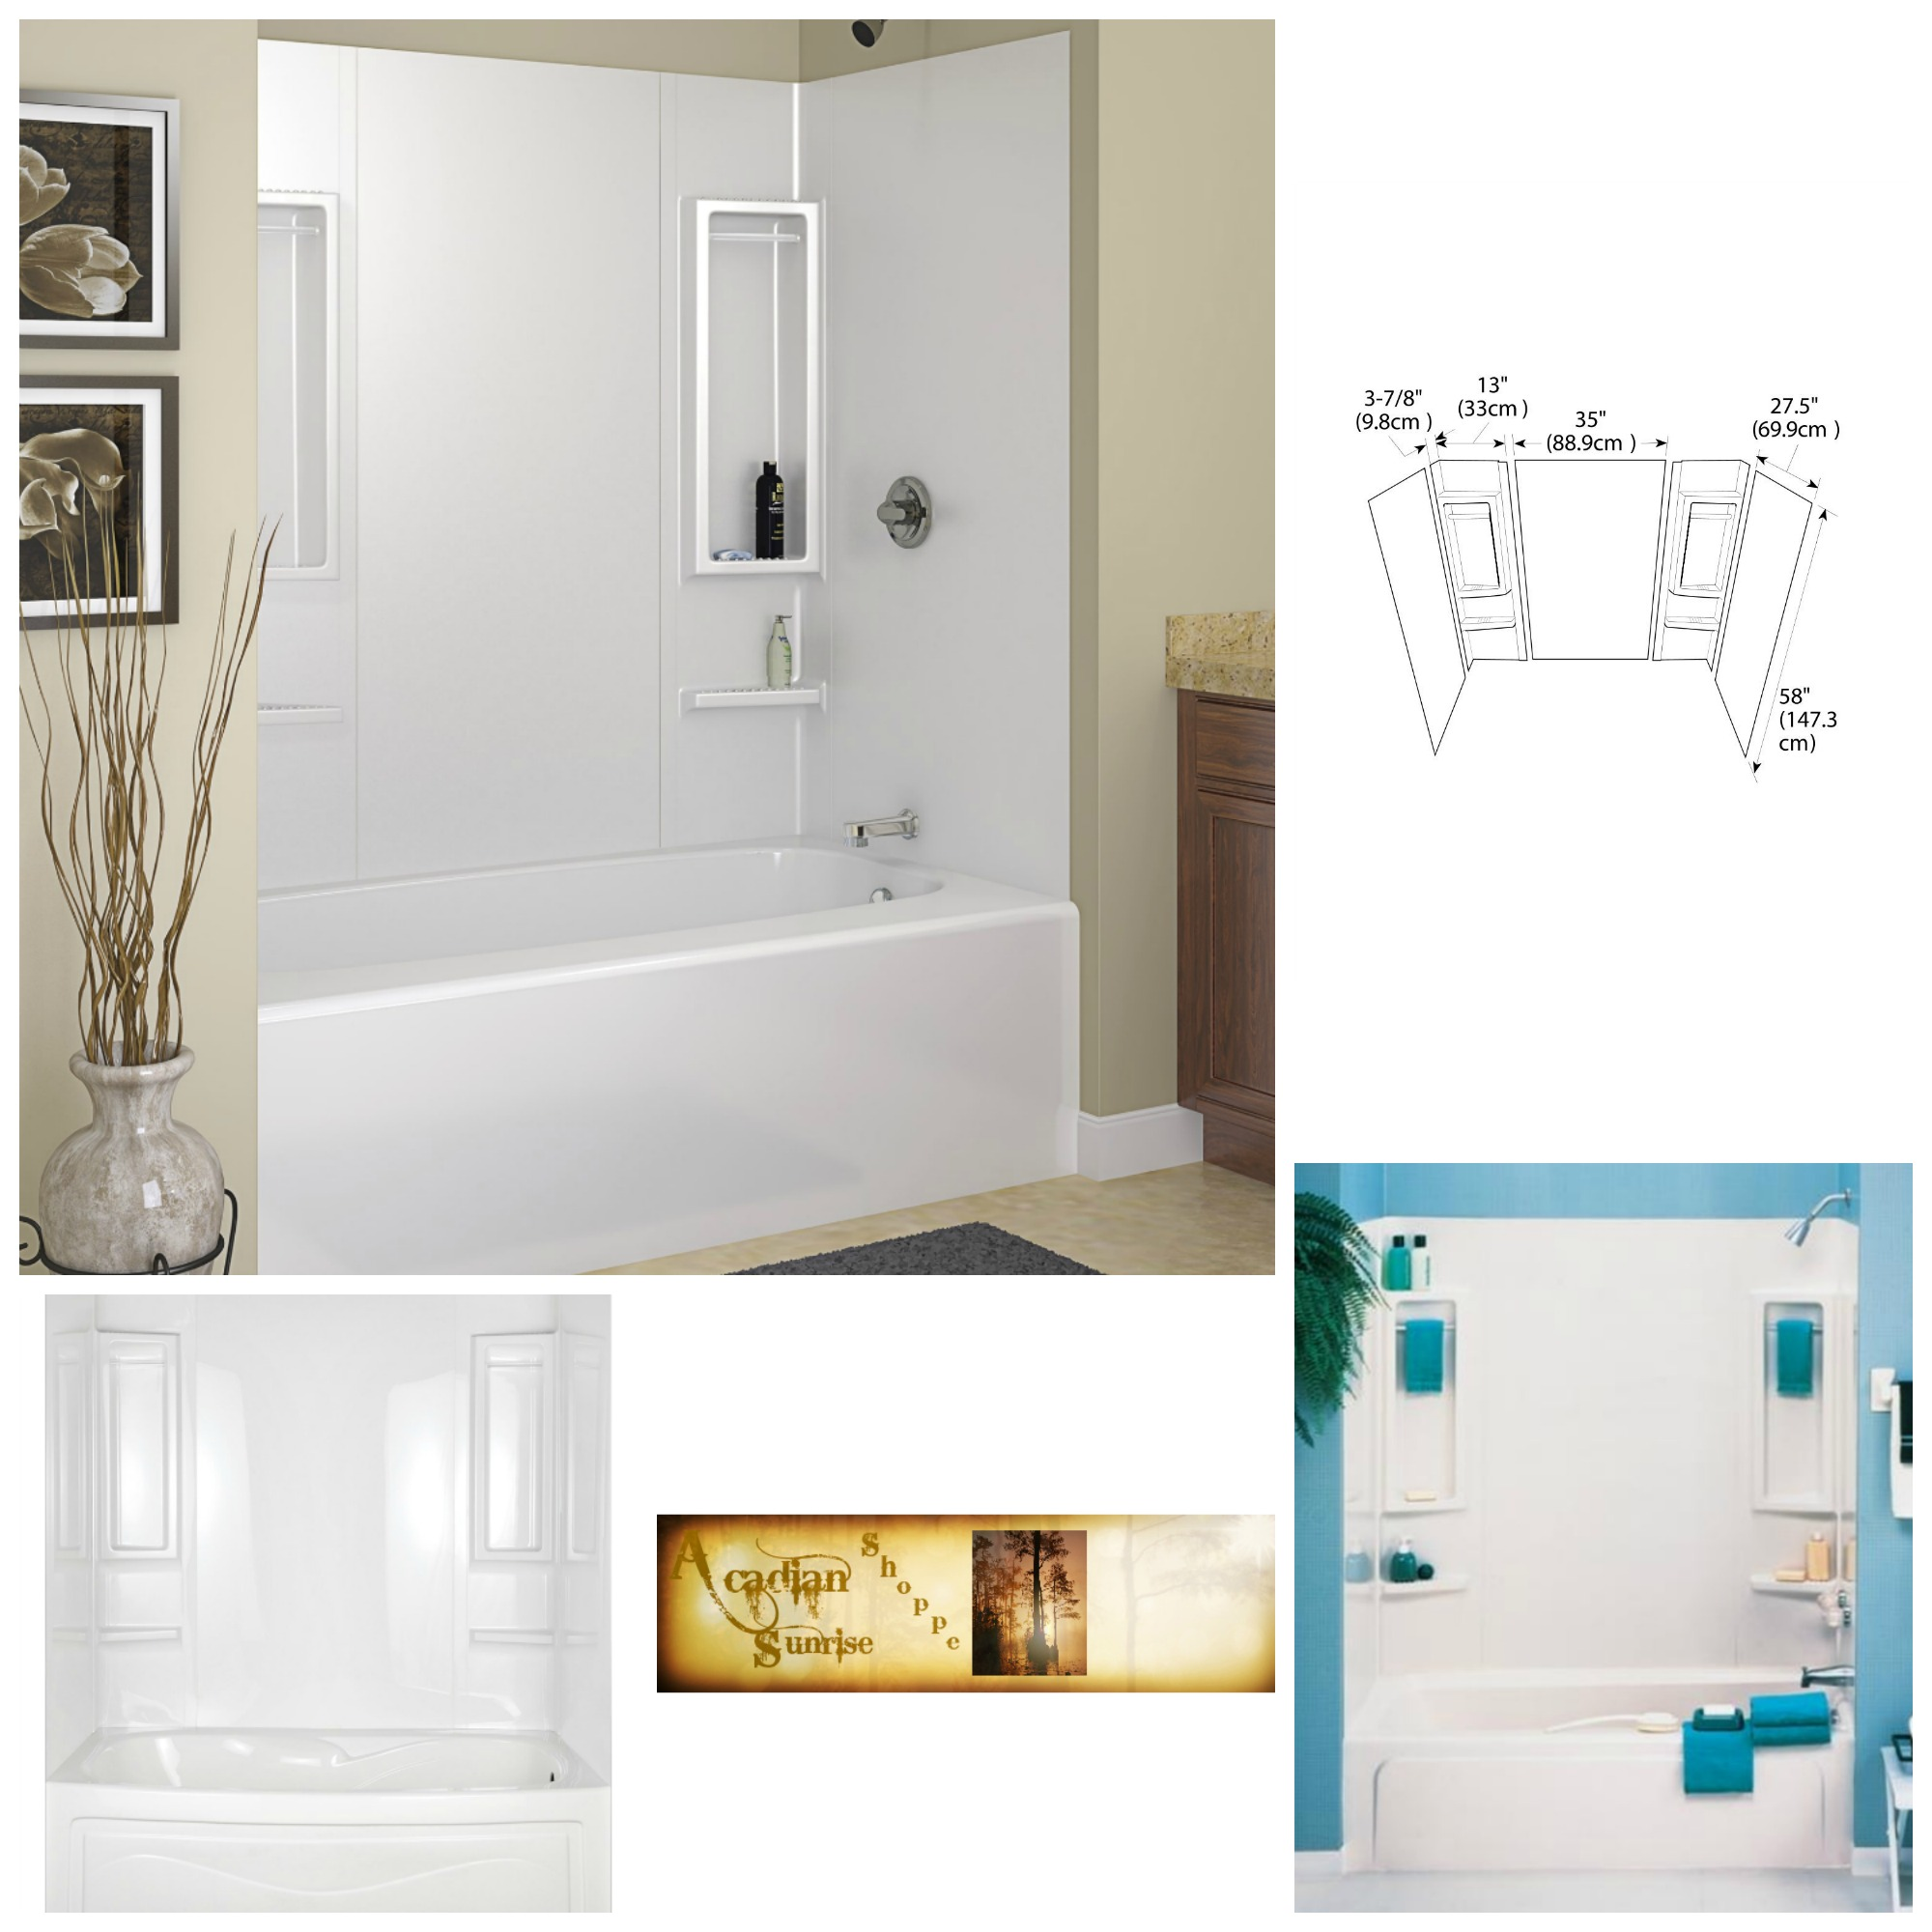 Details About White Tub Wall 5pc Bath Shower Surround Easy Install Diy Home Decor Improvement